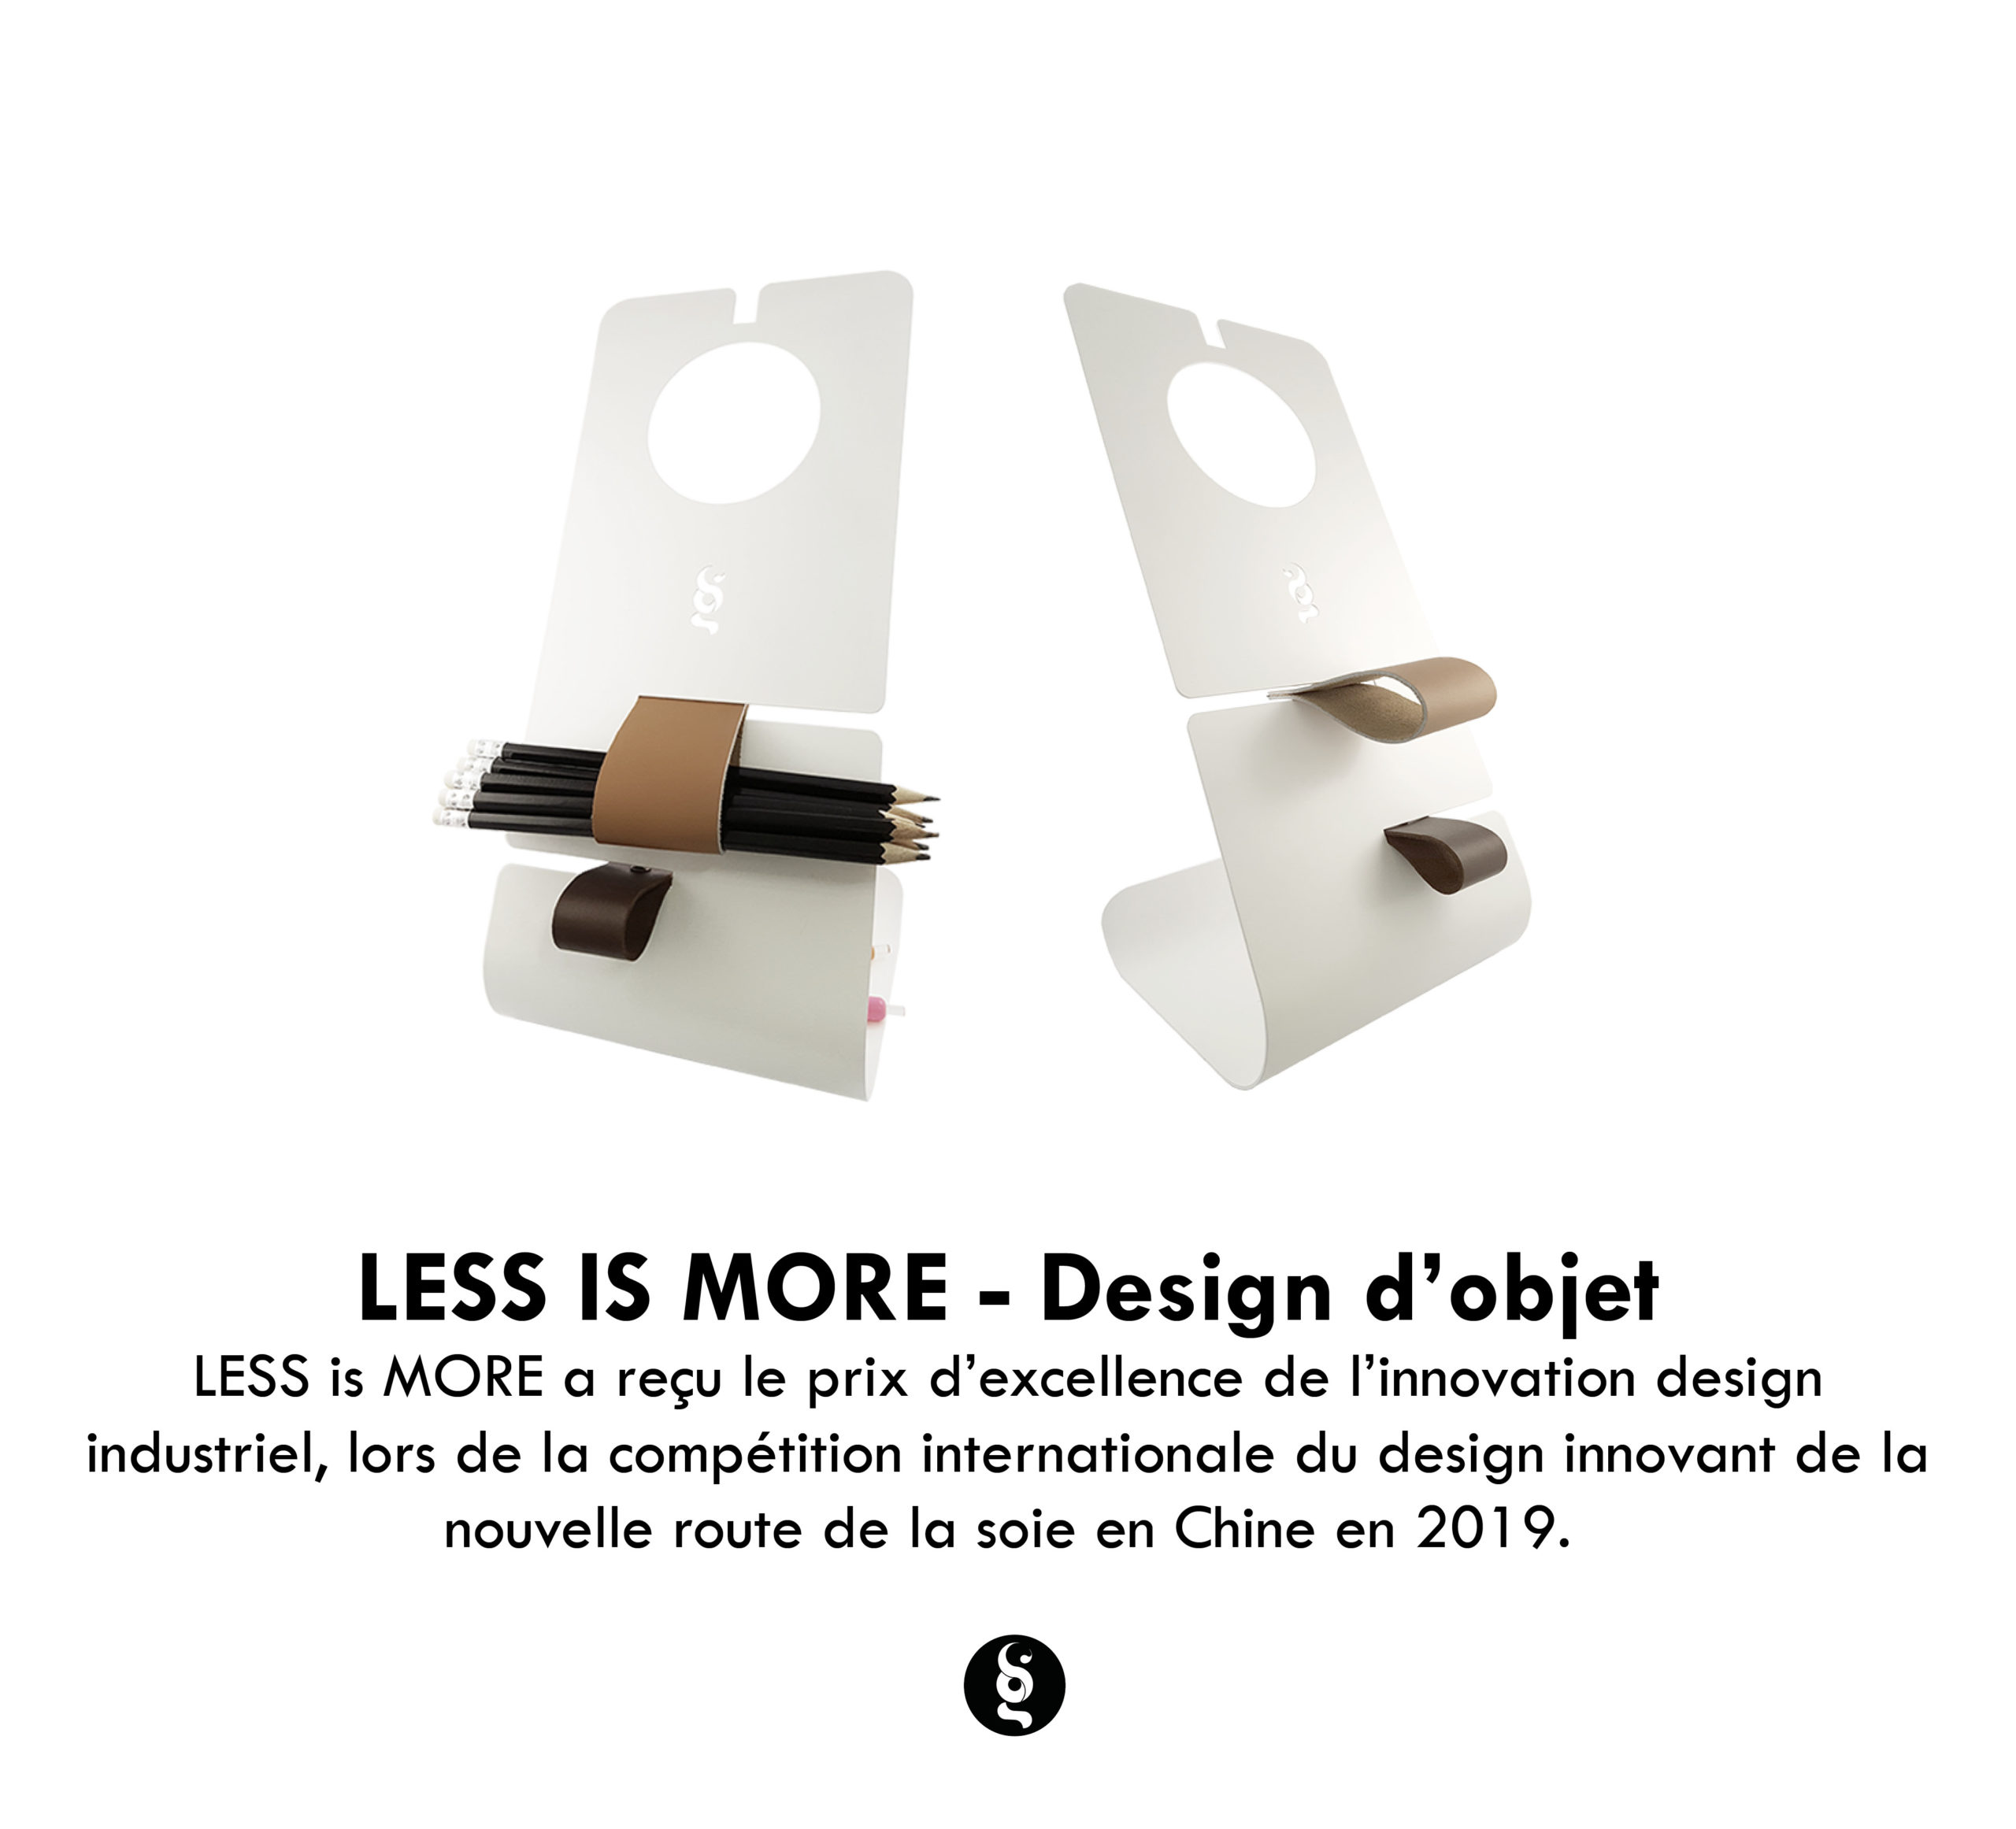 Design d'objet - LESS is MORE